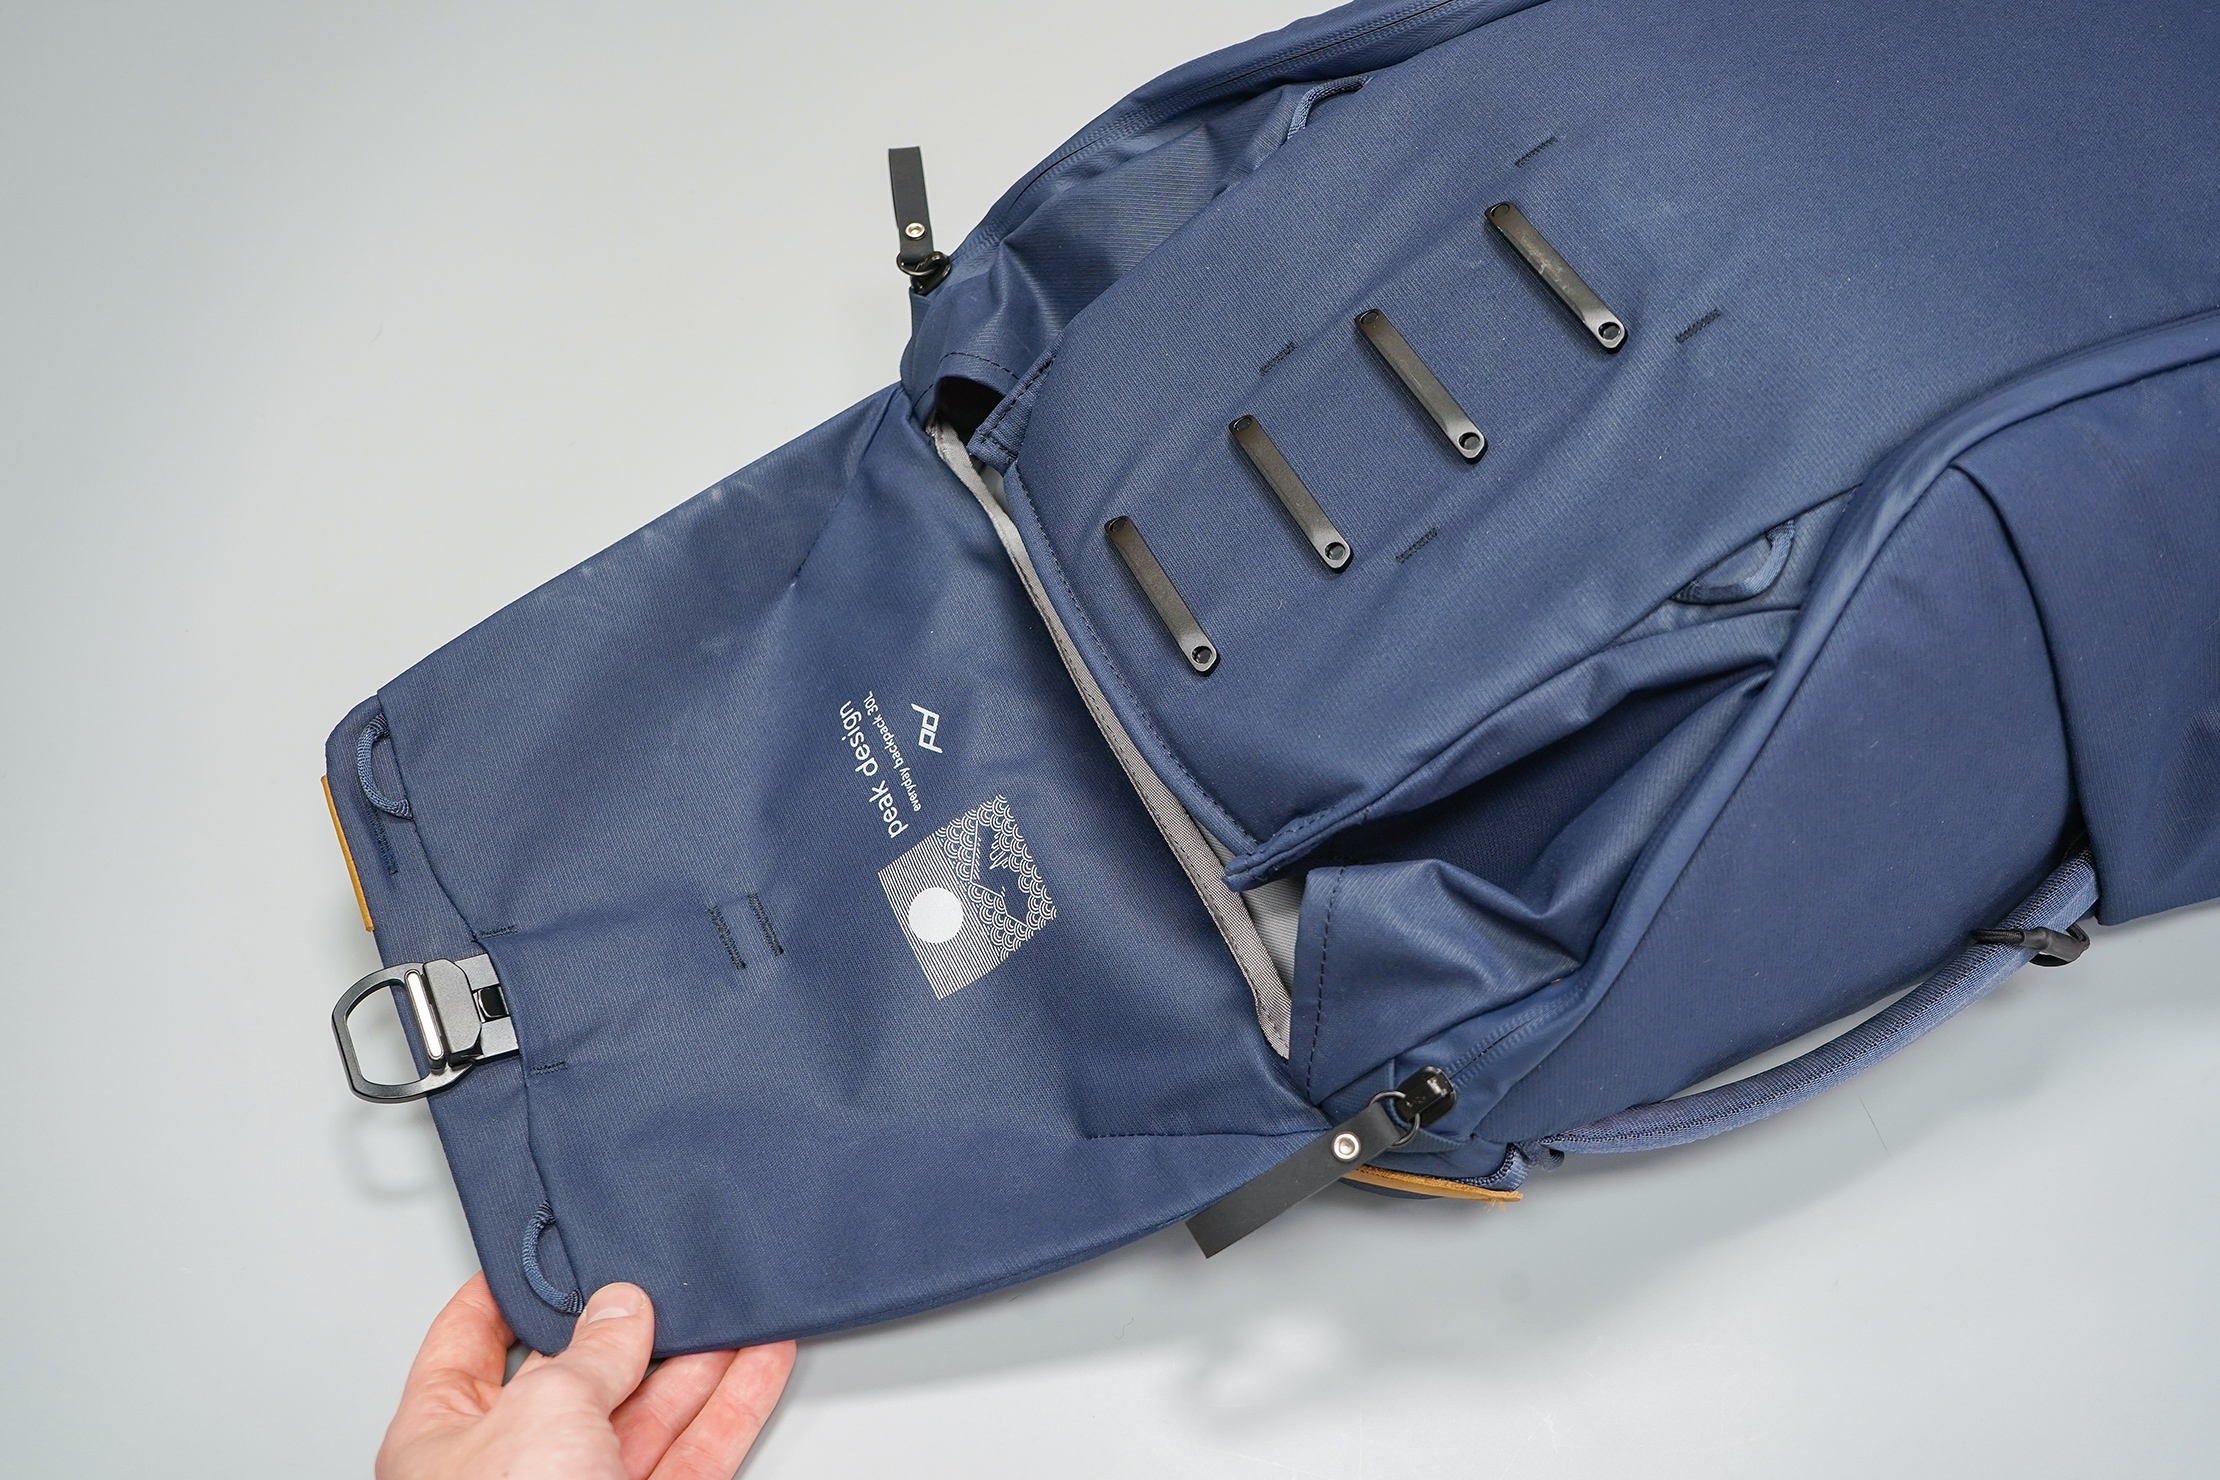 Peak Design Everyday Backpack 30L (V2) Top Opening & MagLatch Rails